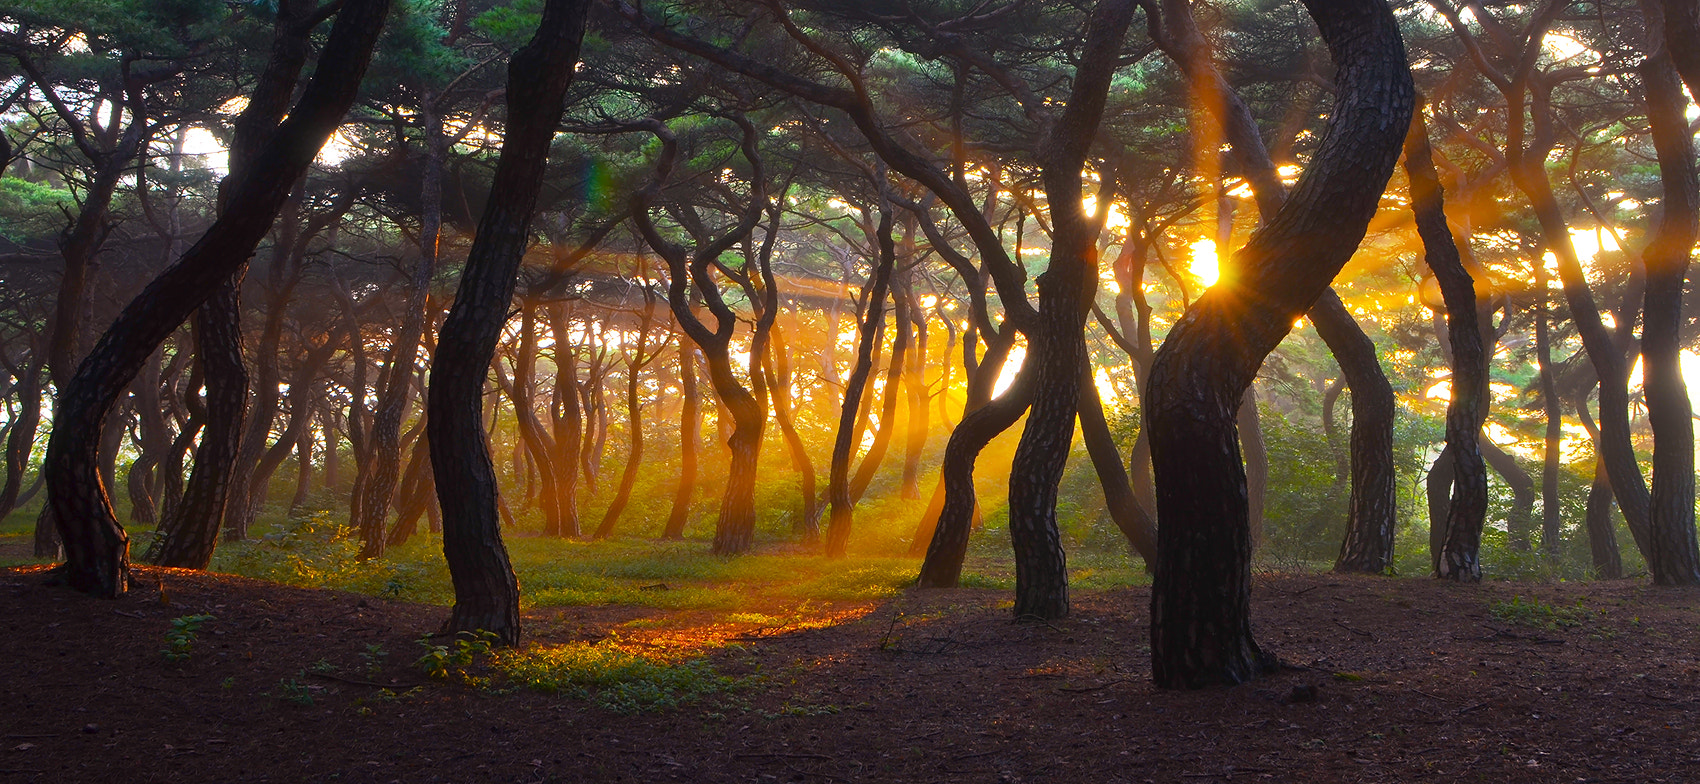 Photograph Forest by Chigun Nam on 500px